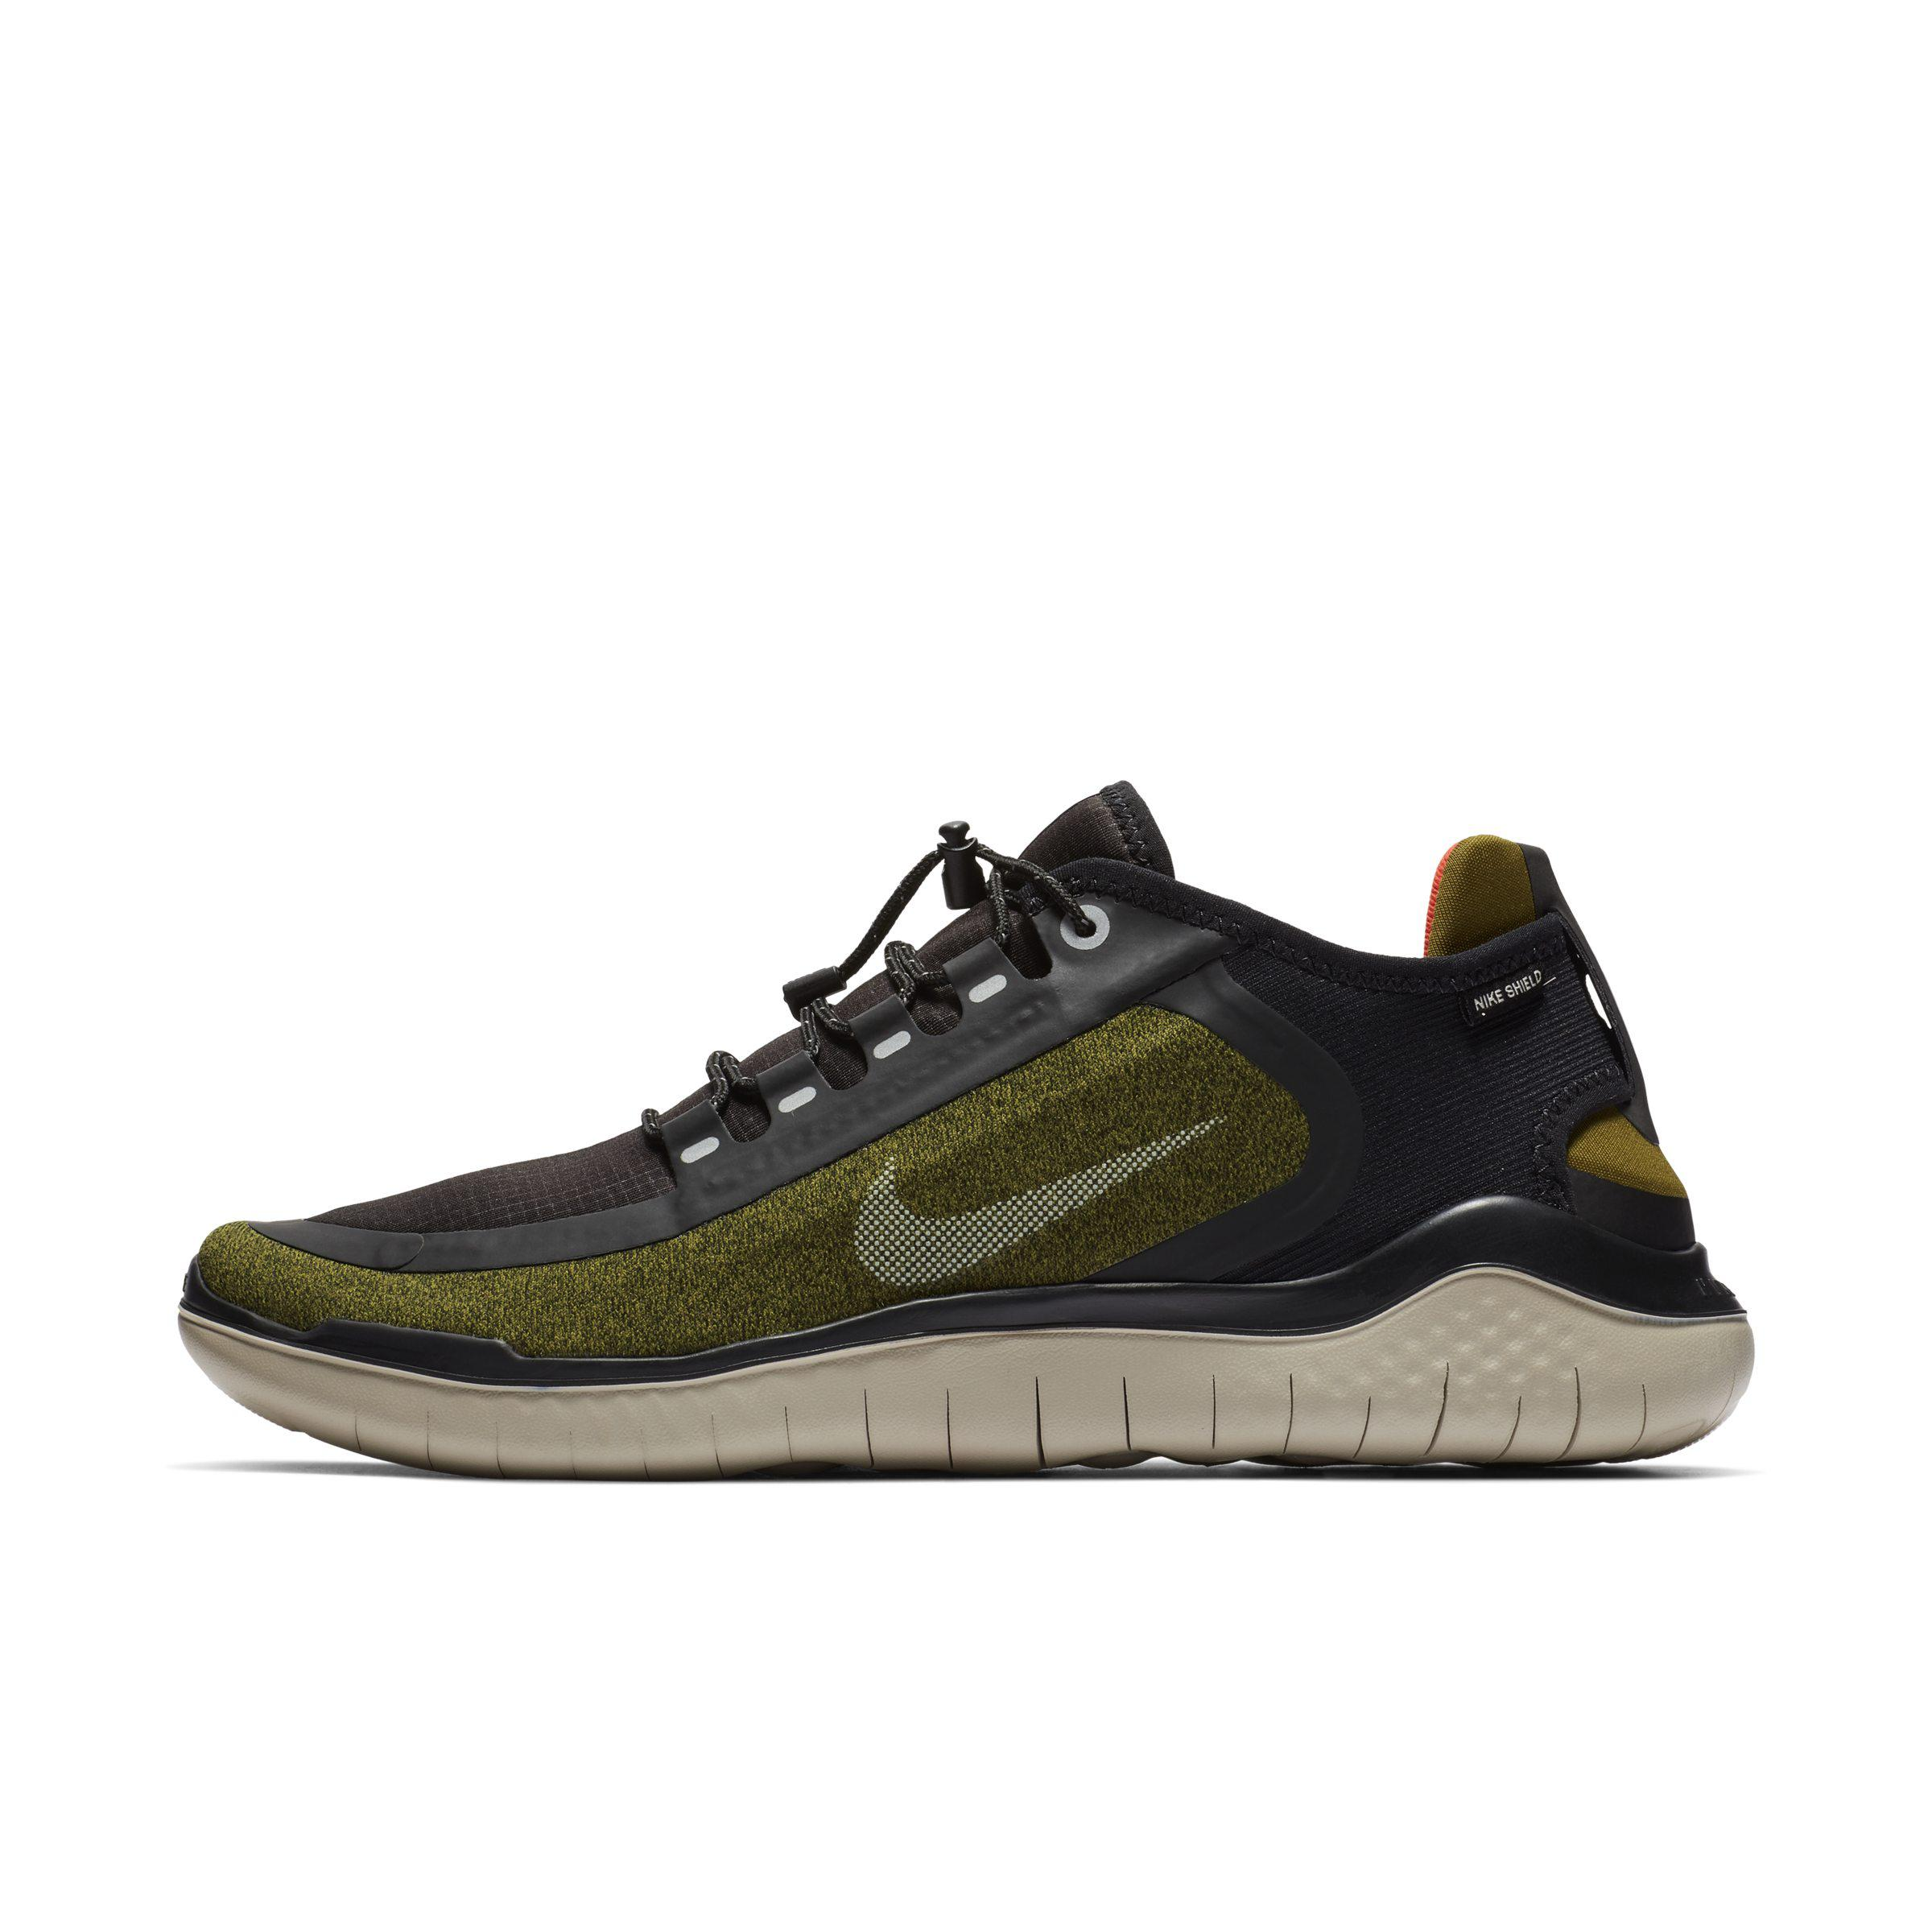 29450840b415 Nike Free Rn 2018 Shield Water-repellent Running Shoe in Green for ...